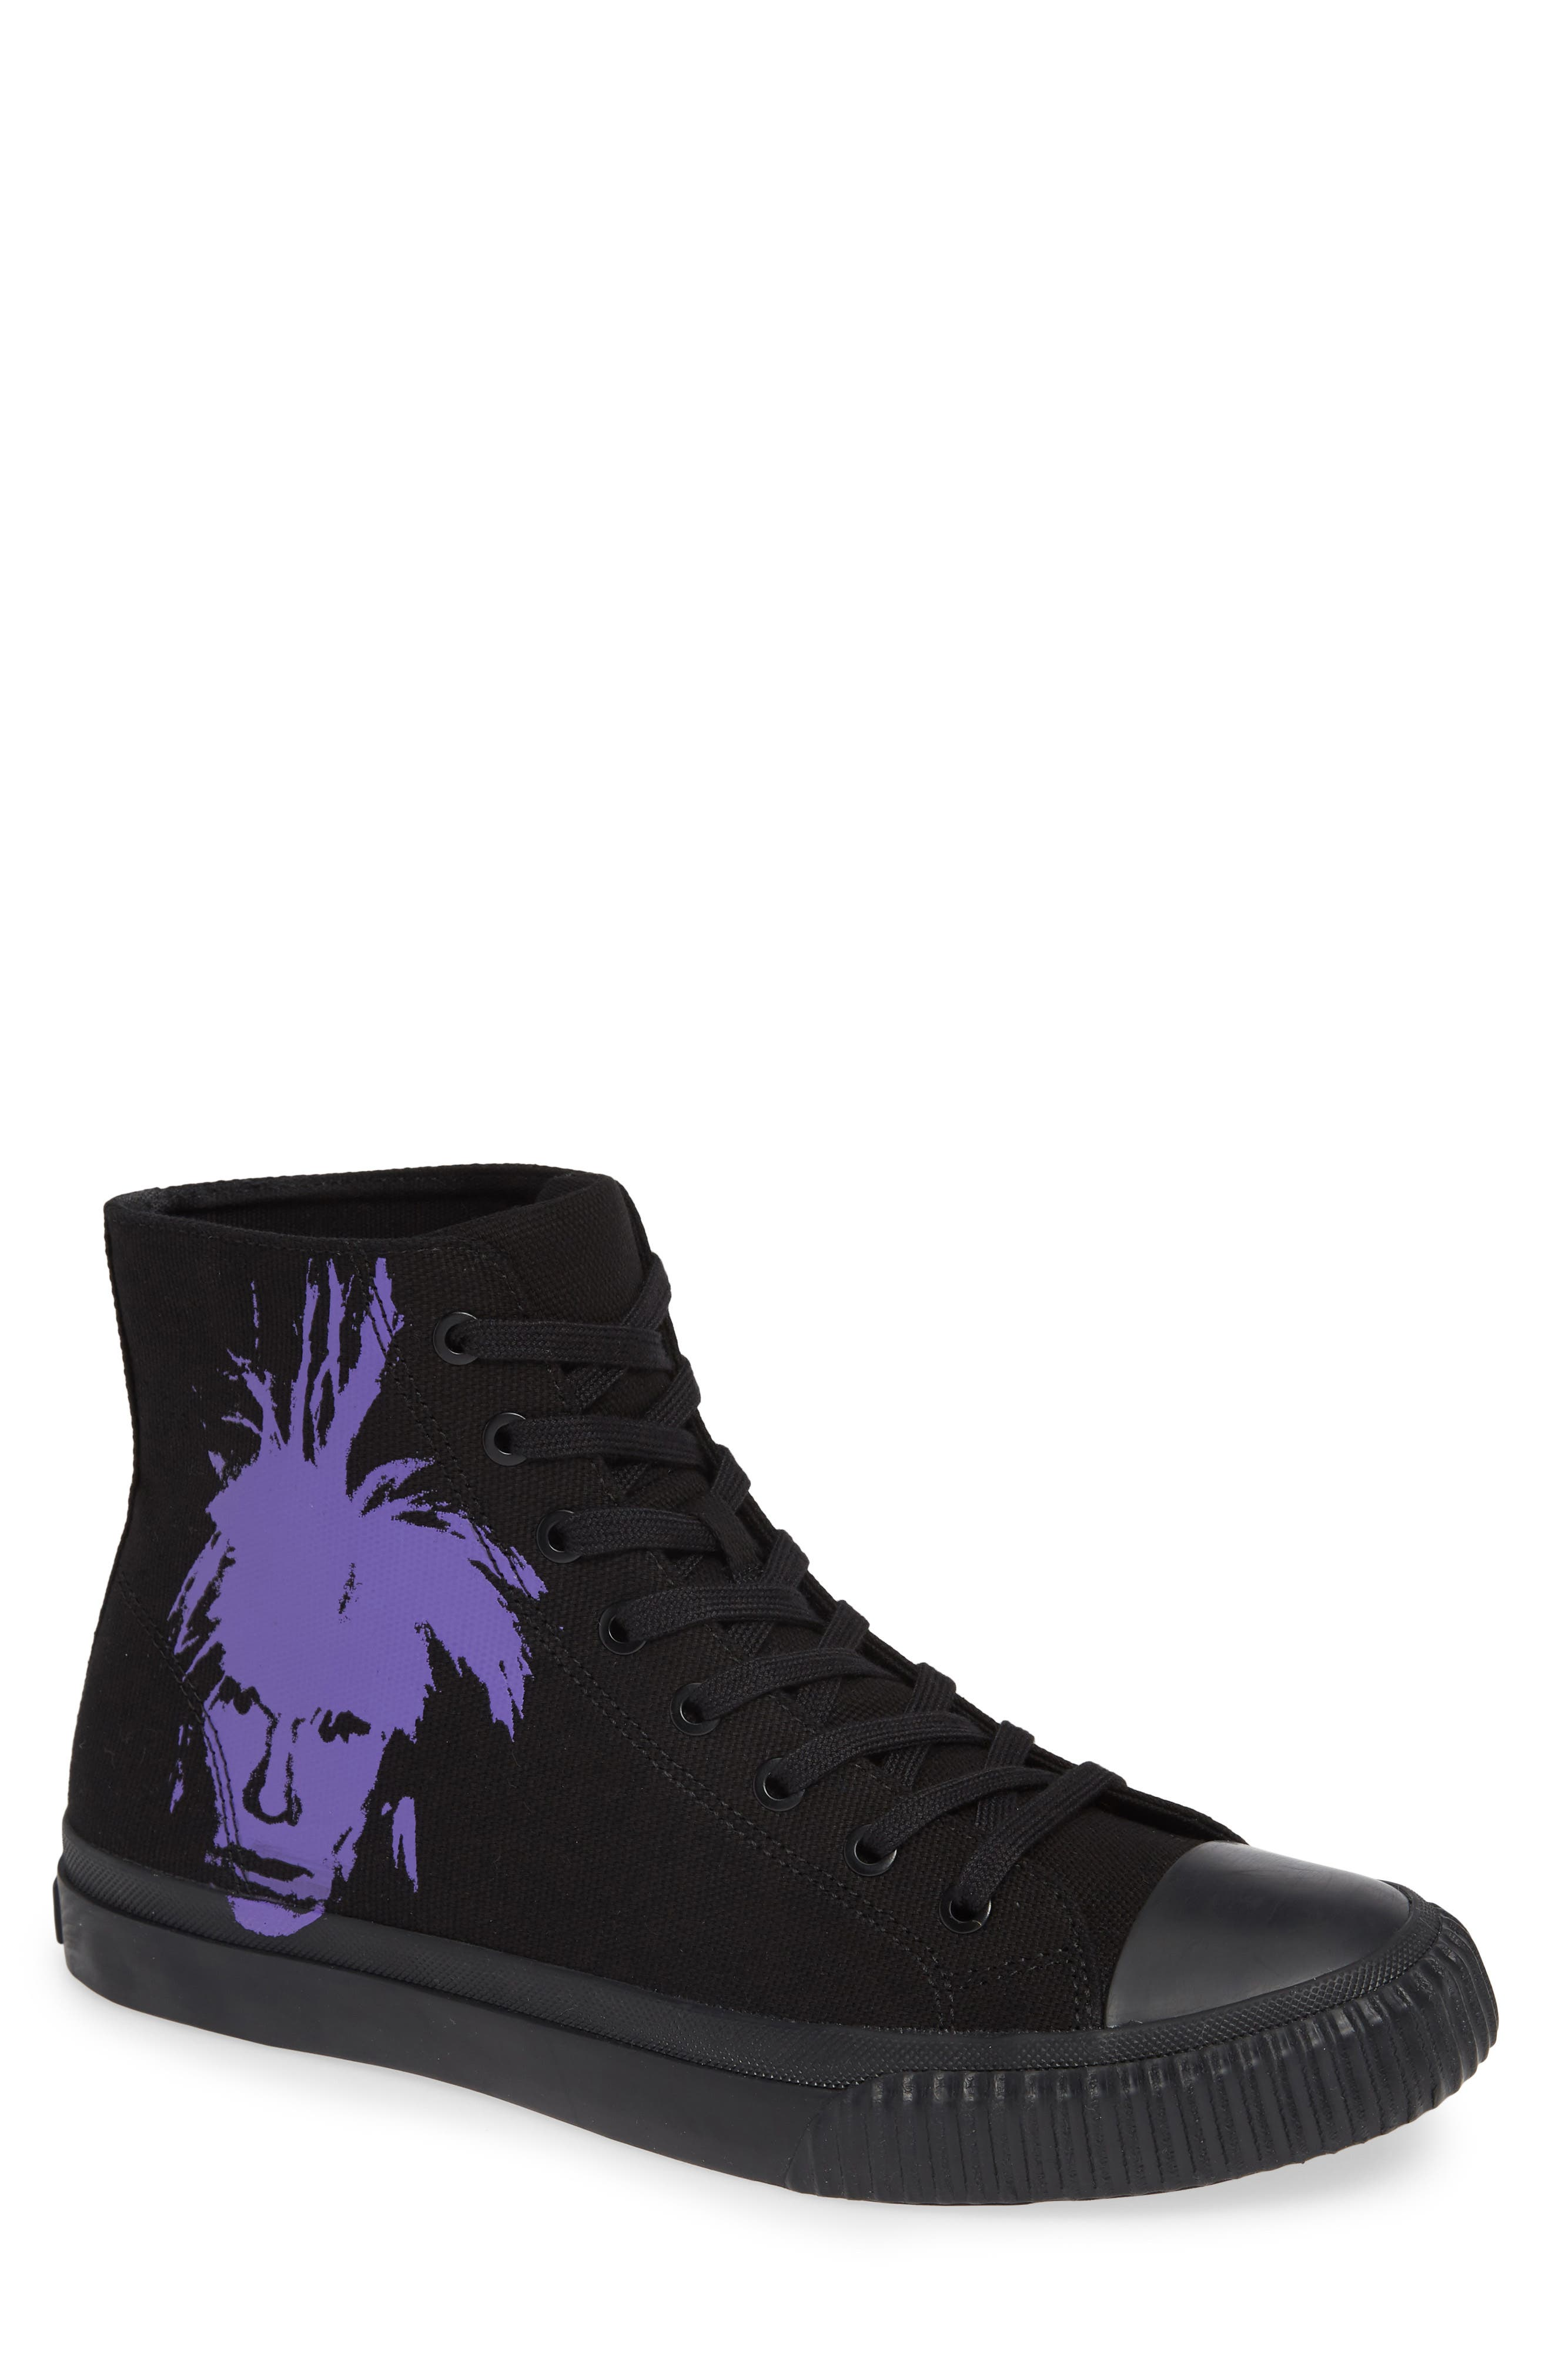 Iconic Warhol Sneaker,                         Main,                         color, 006